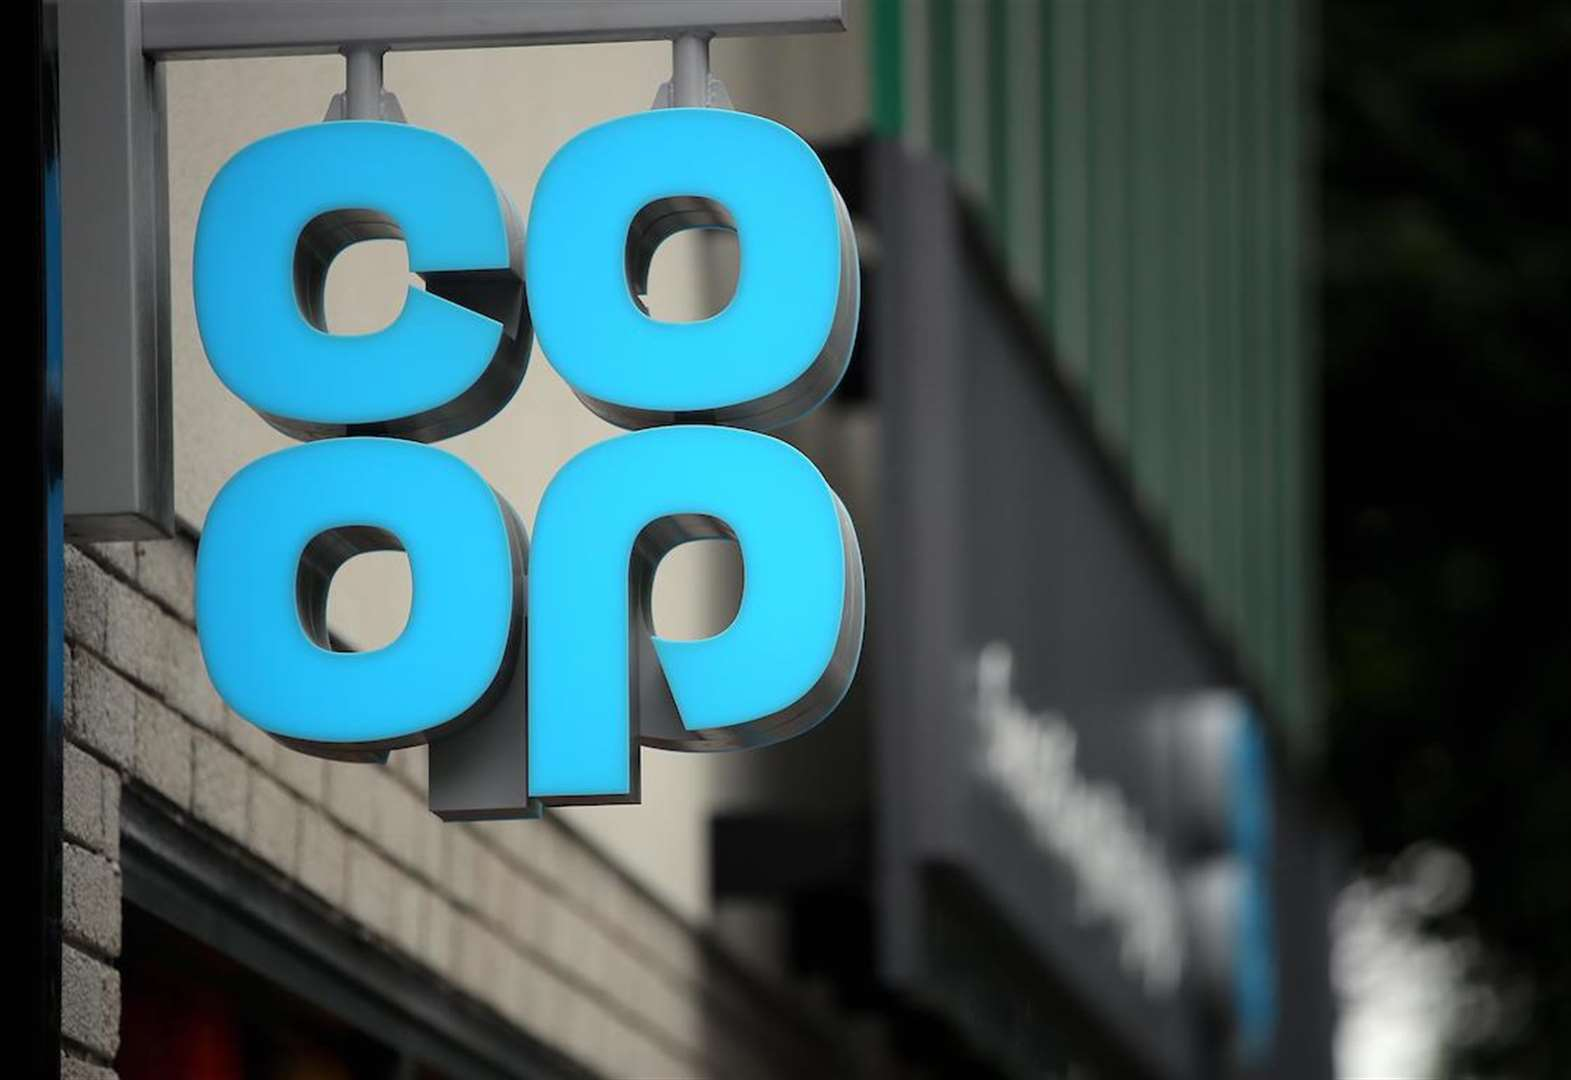 Co-op store receives £515,000 revamp